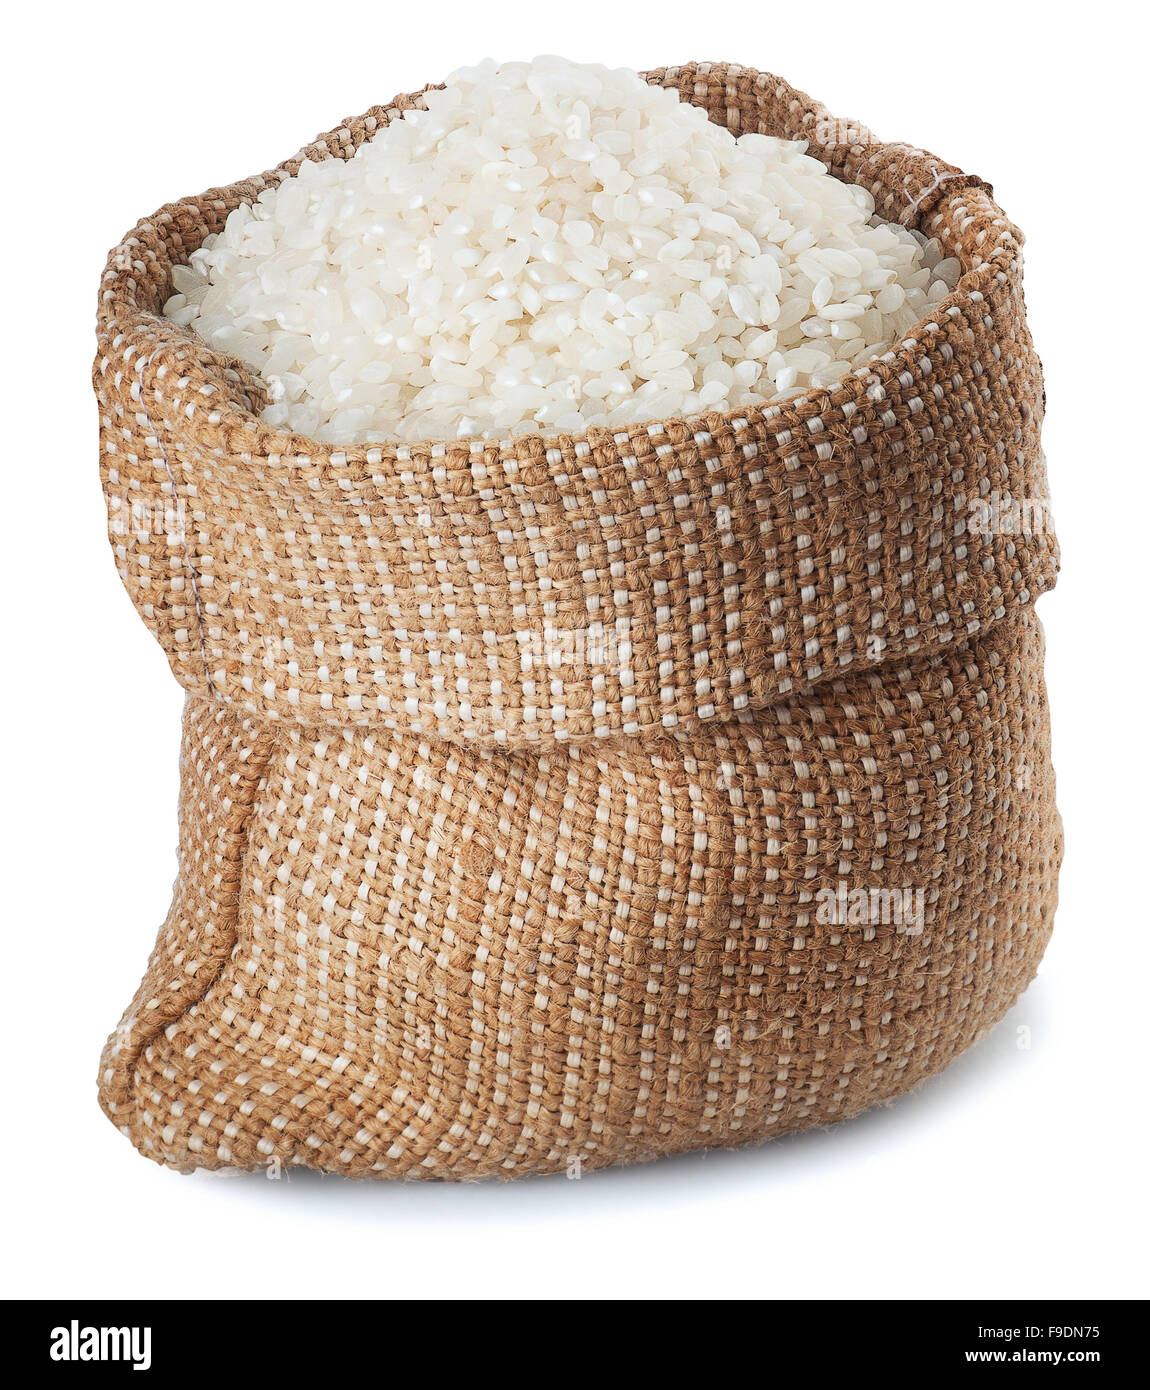 White rice in burlap sack isolated on white background - Stock Image